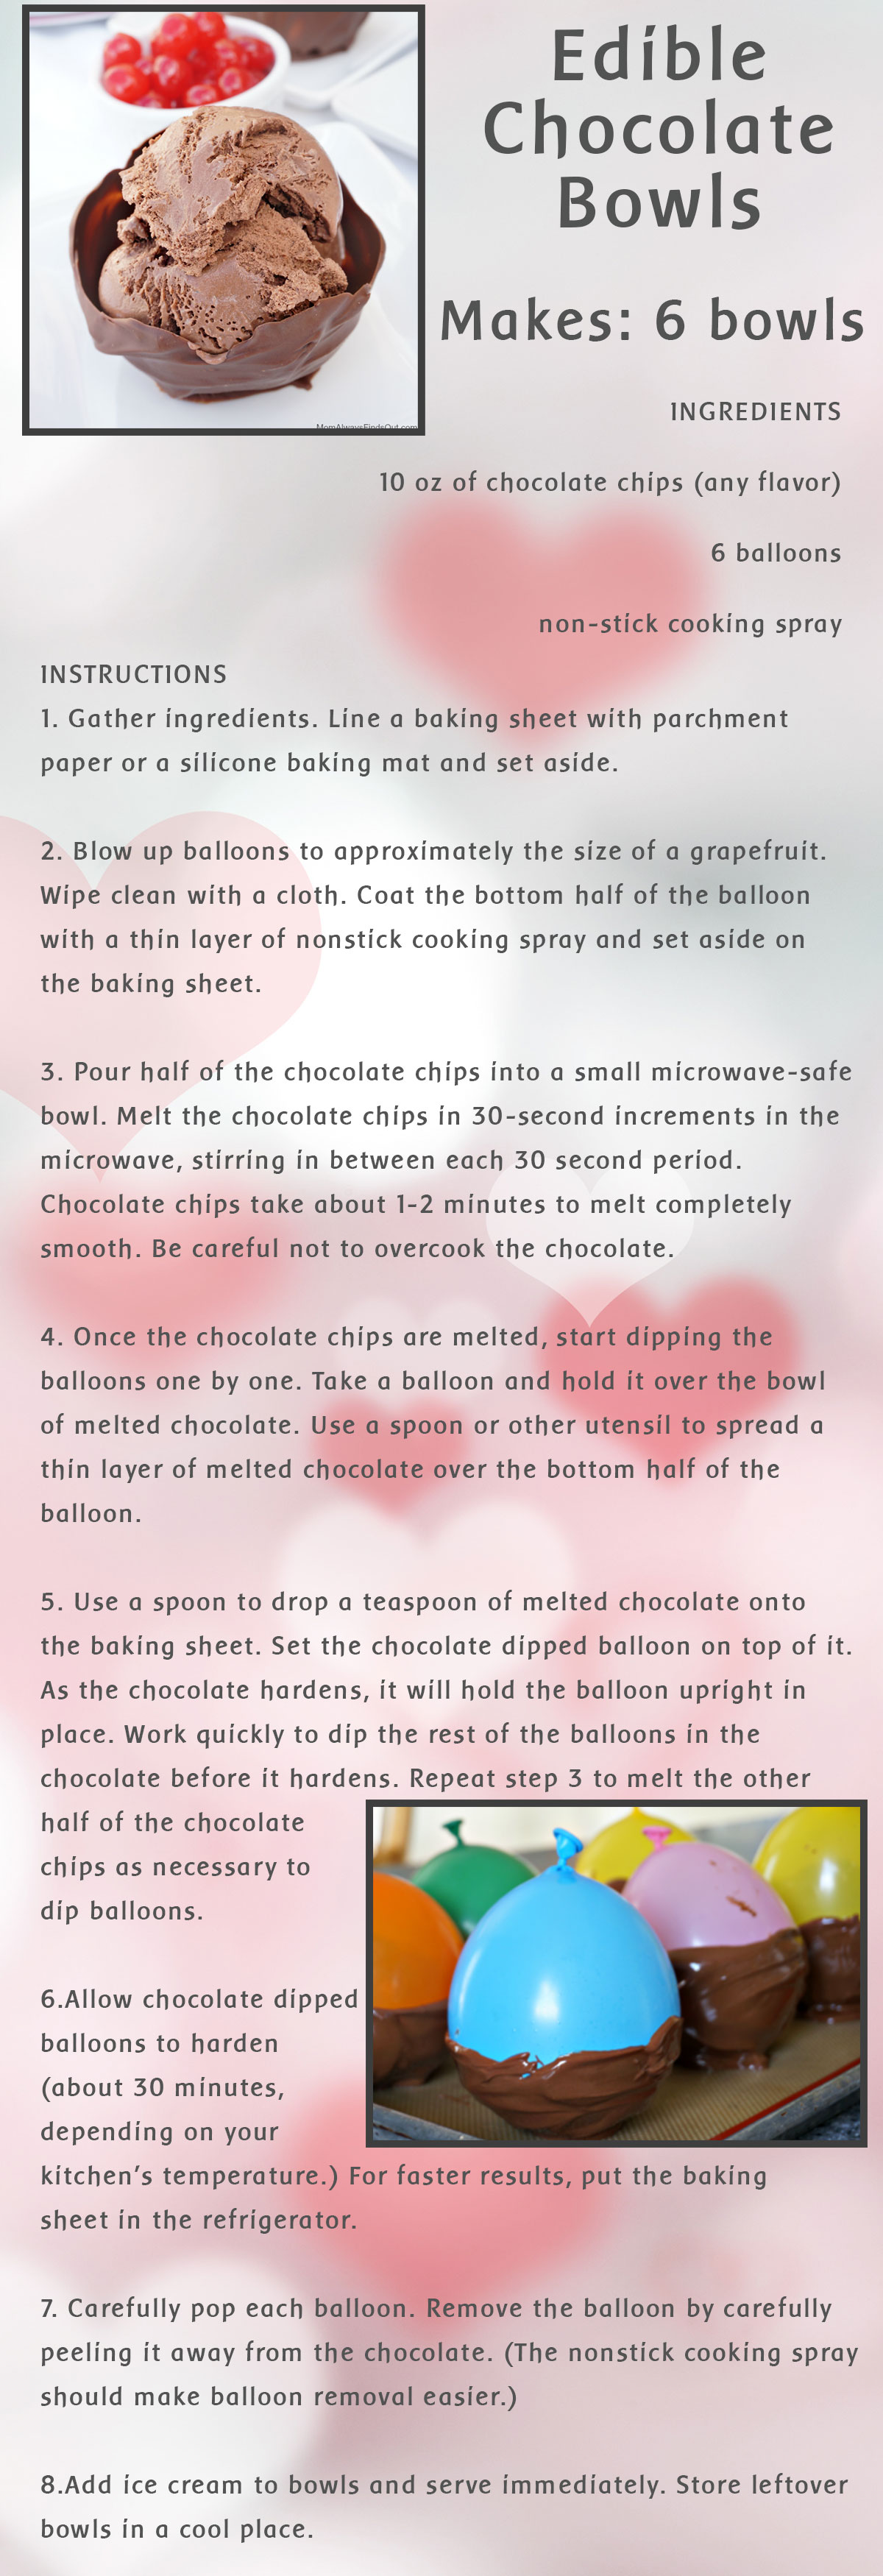 Edible Chocolate Bowls Recipe Card